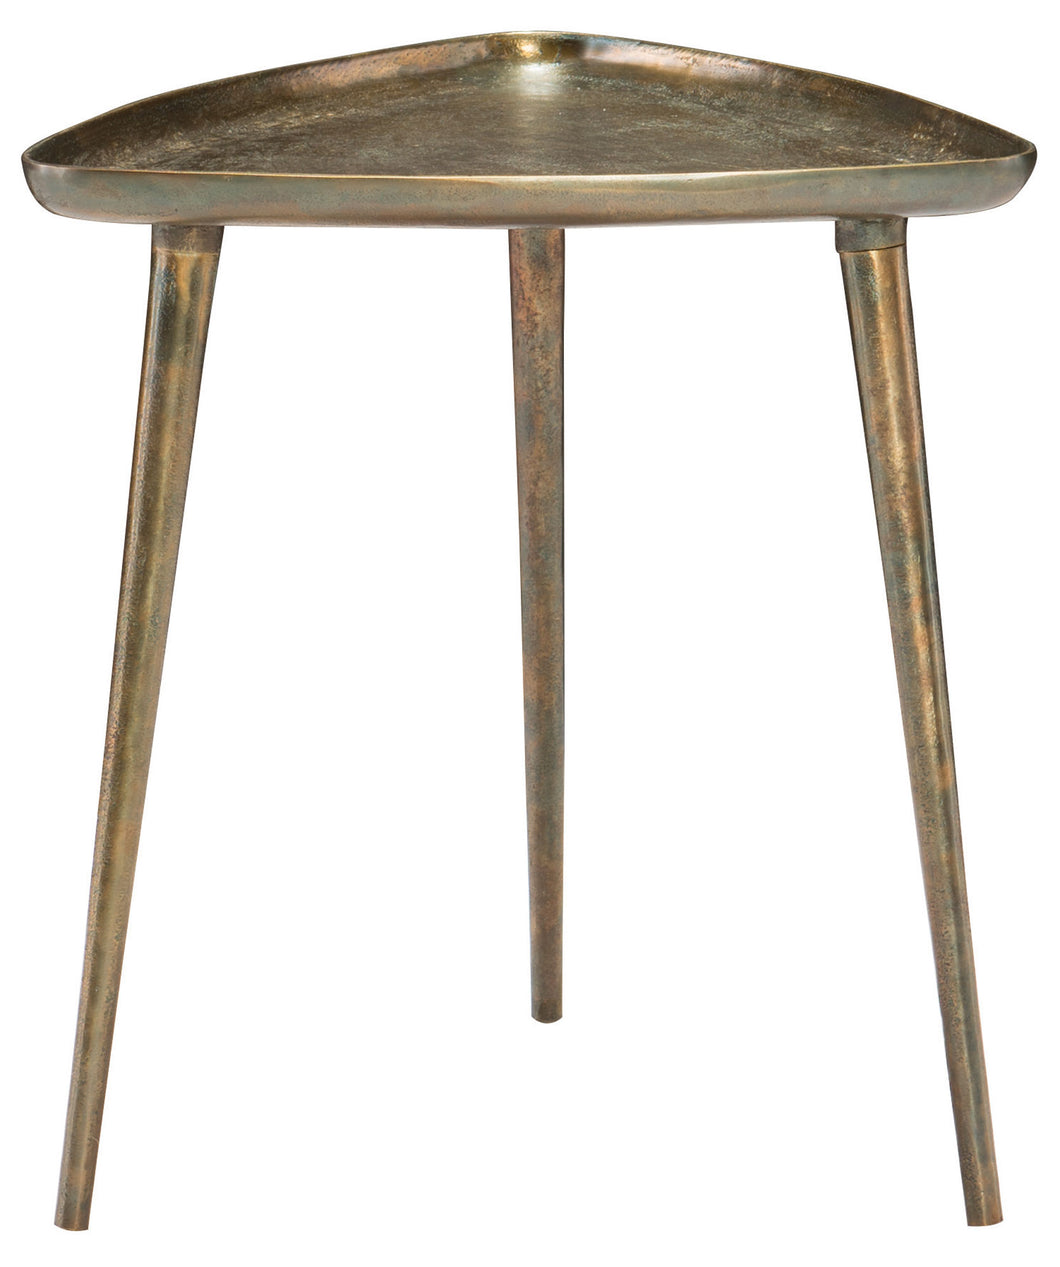 Antique Dark Brass Cast Aluminum End Table, Home Furnishings, Laura of Pembroke